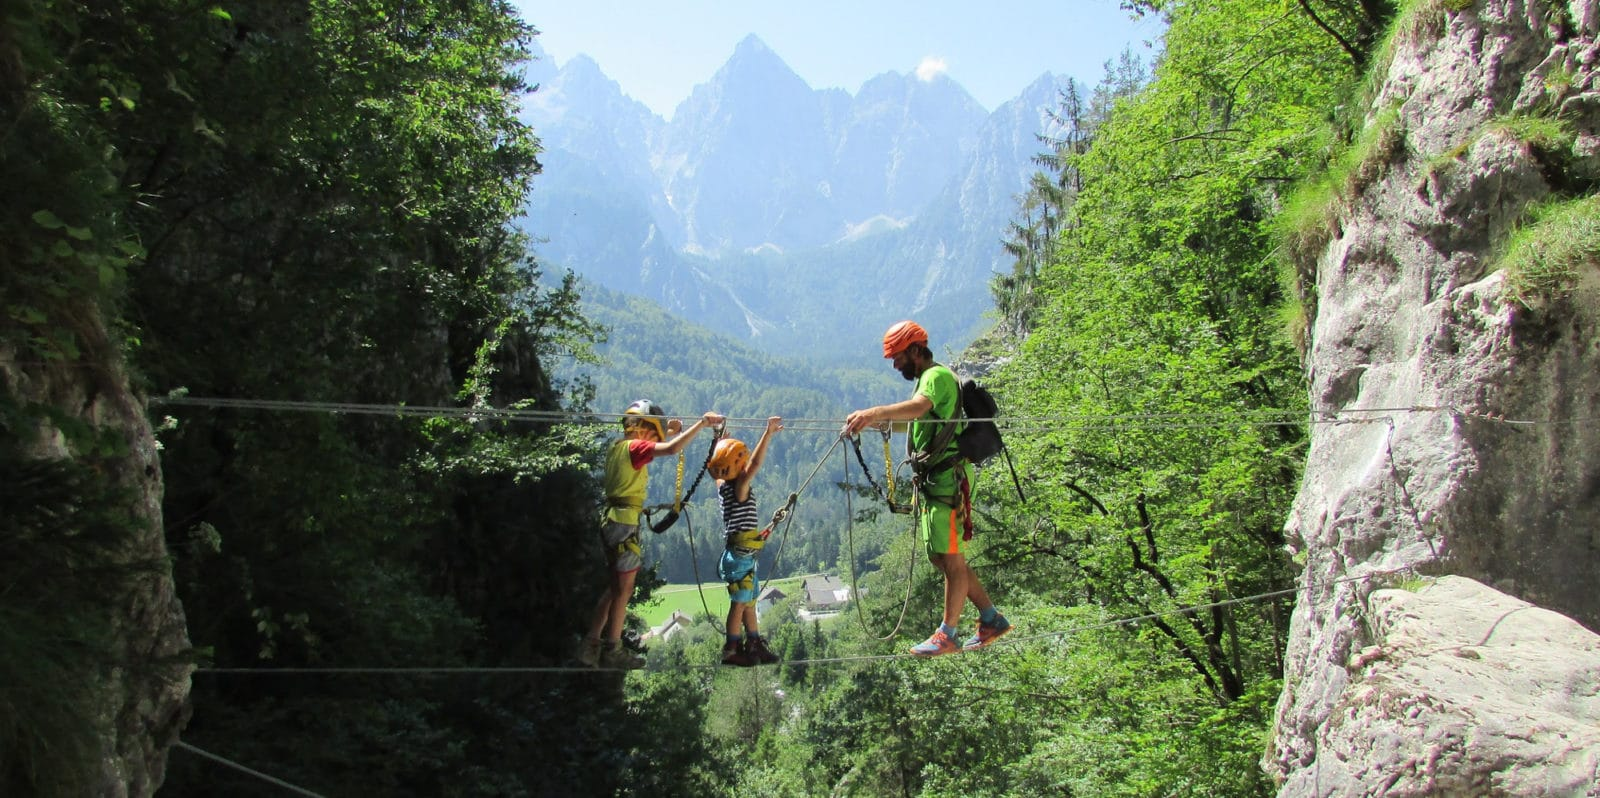 Family friendly activities around Slovenia